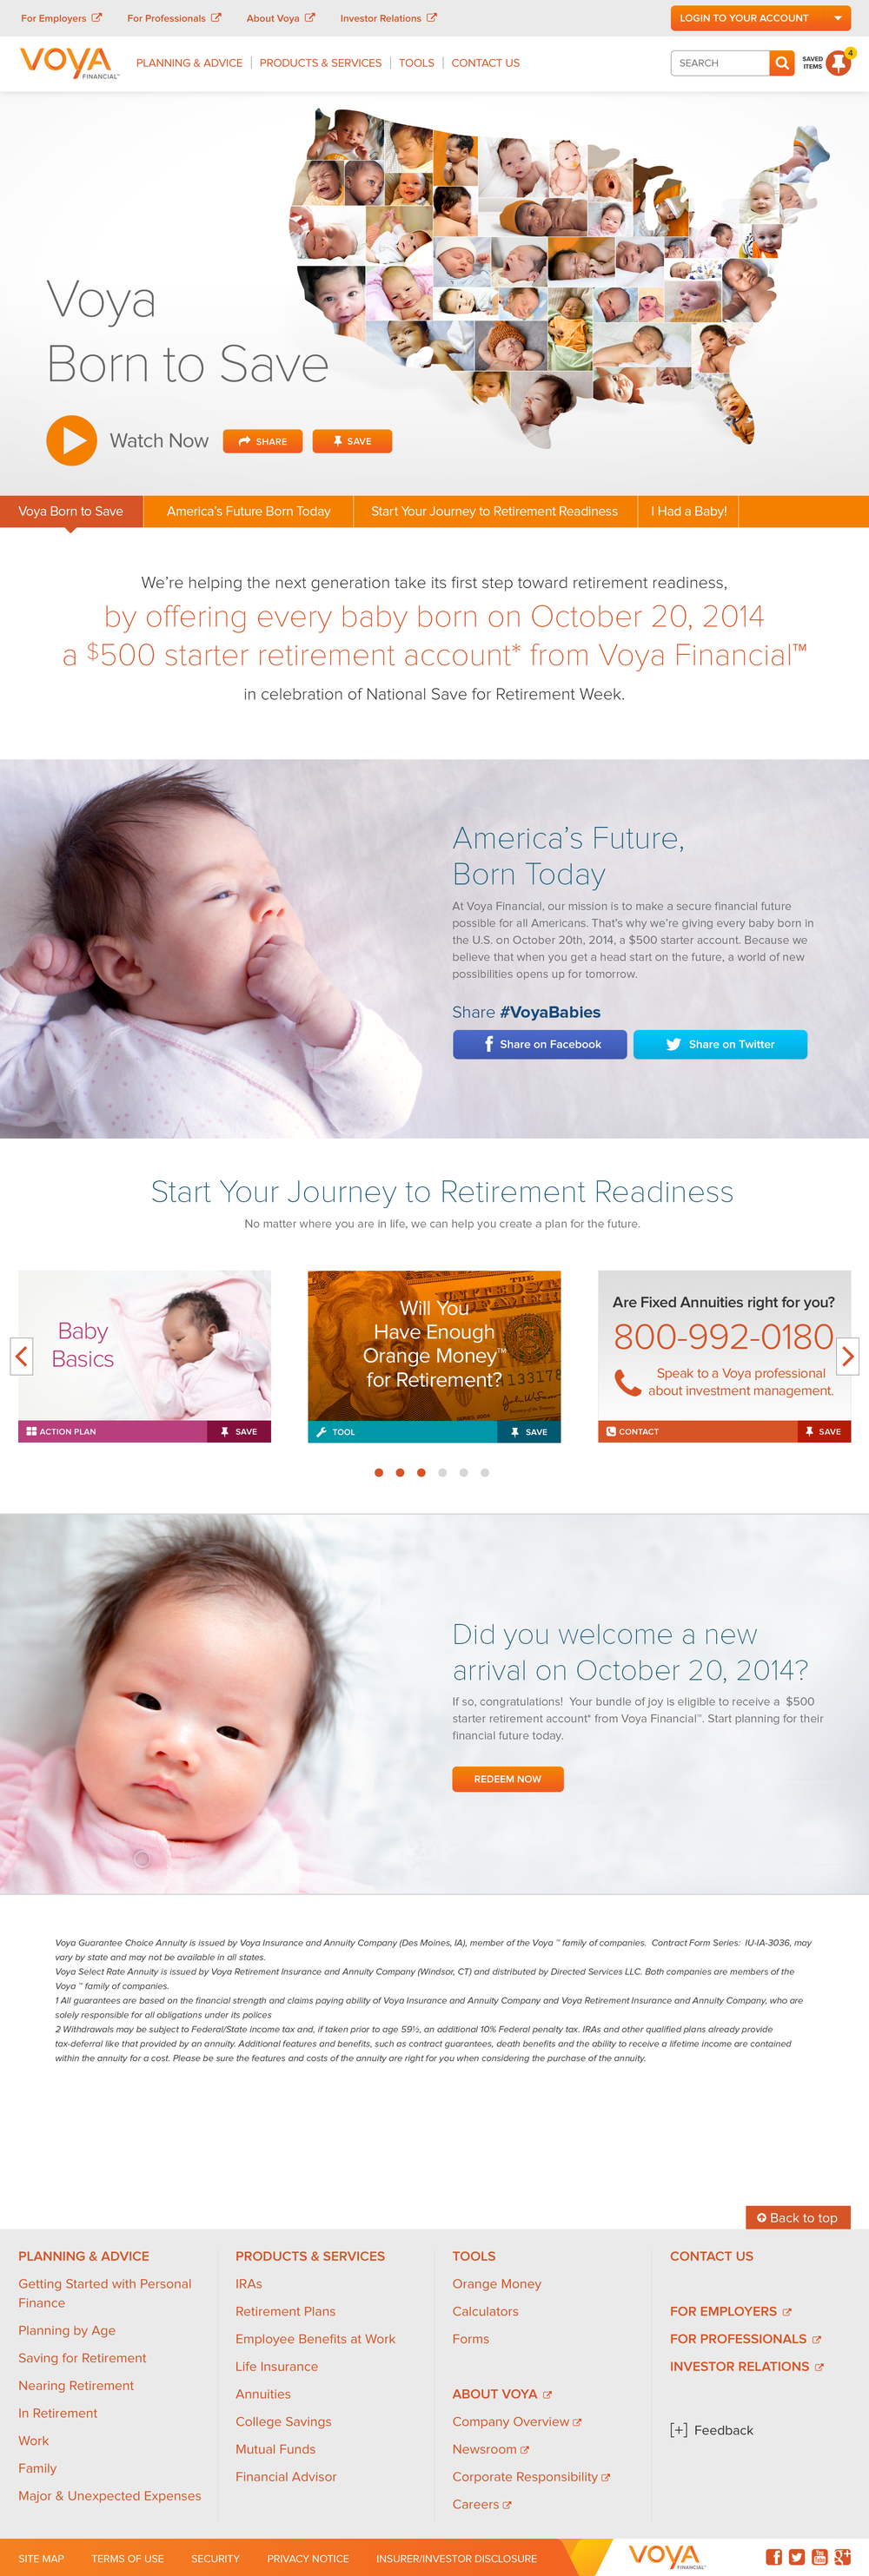 Landing page during #BorntoSave Campaign